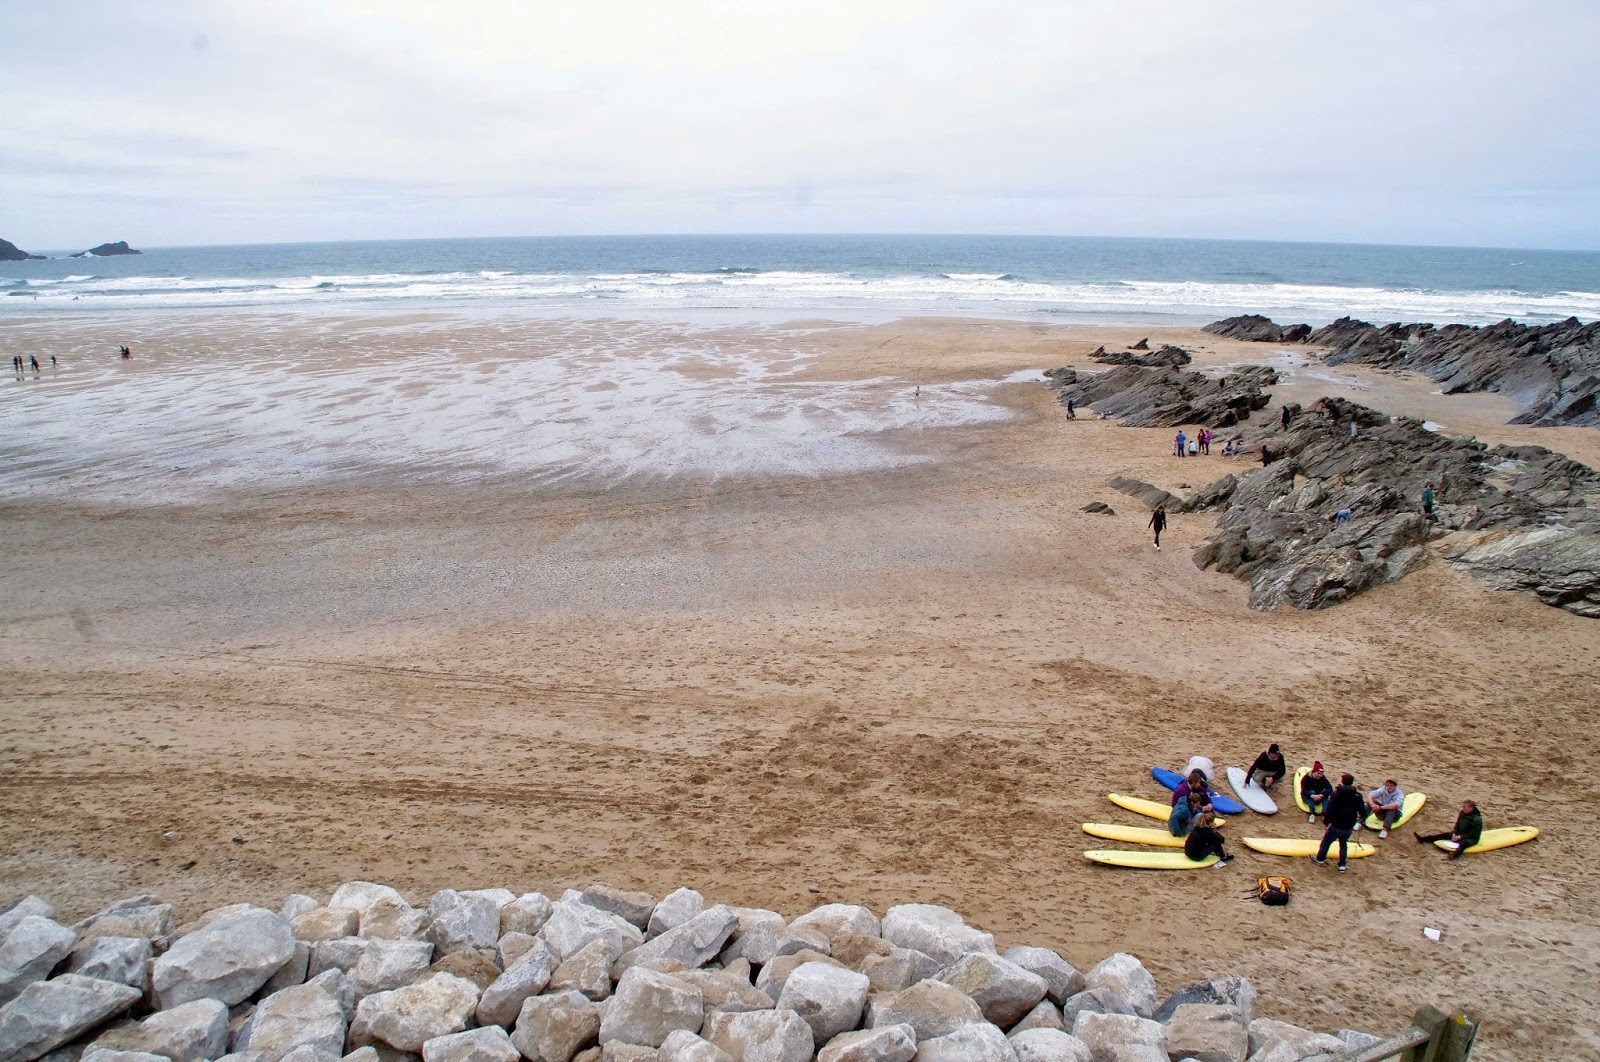 https://www.theaussieflashpacker.com/2015/04/exploring-britains-best-beaches-newquay.html